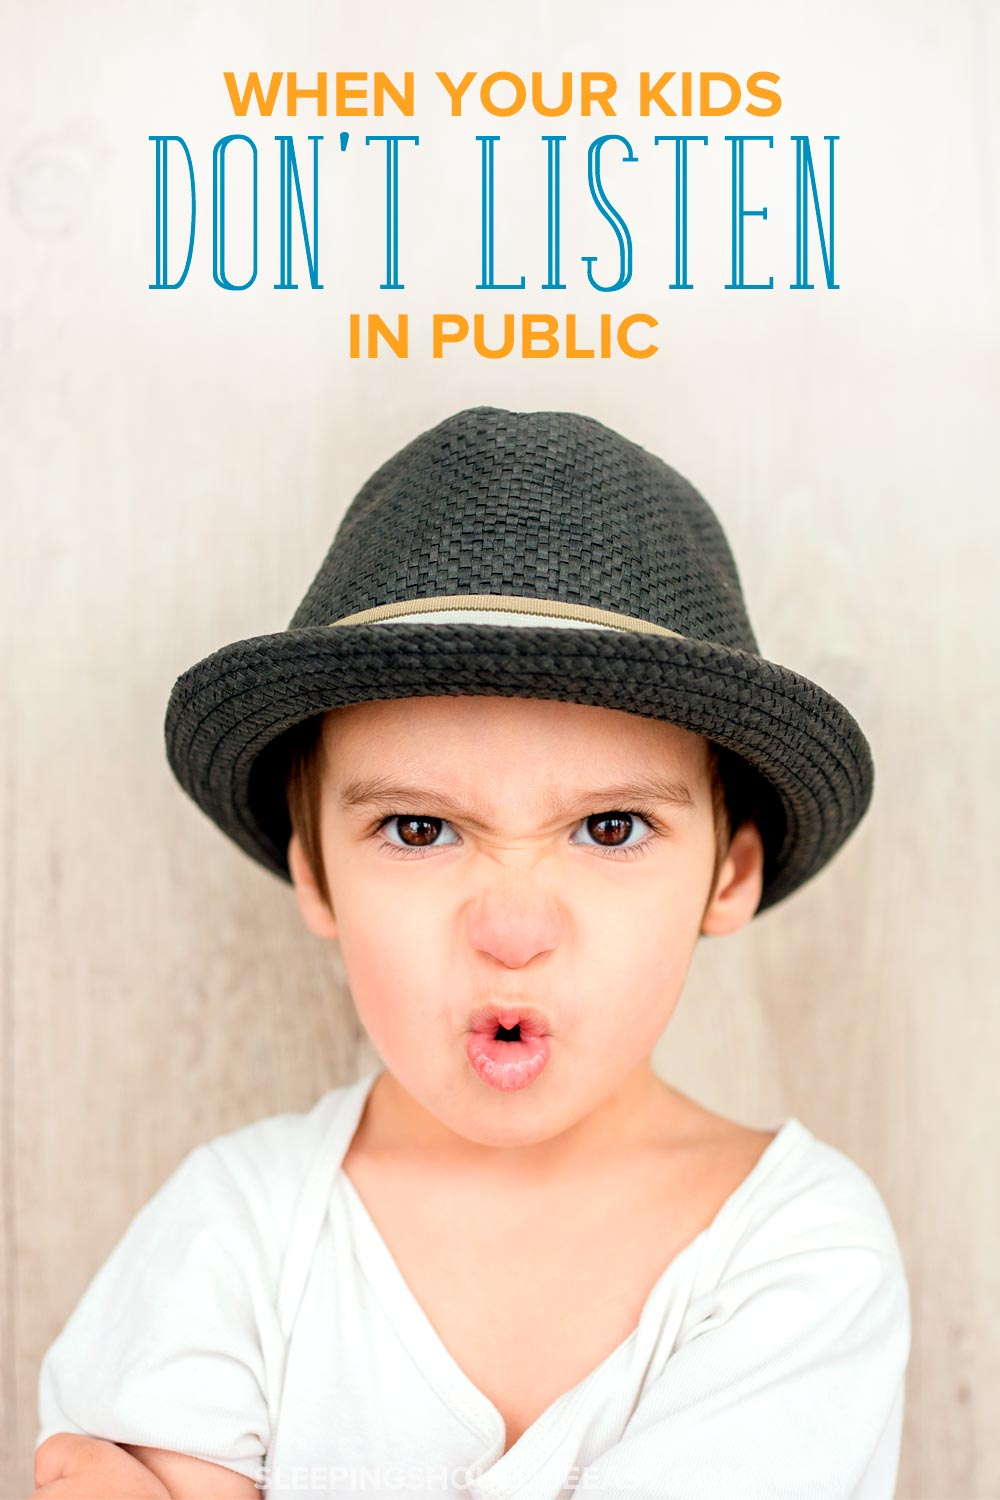 What to do when your kids don't listen in public